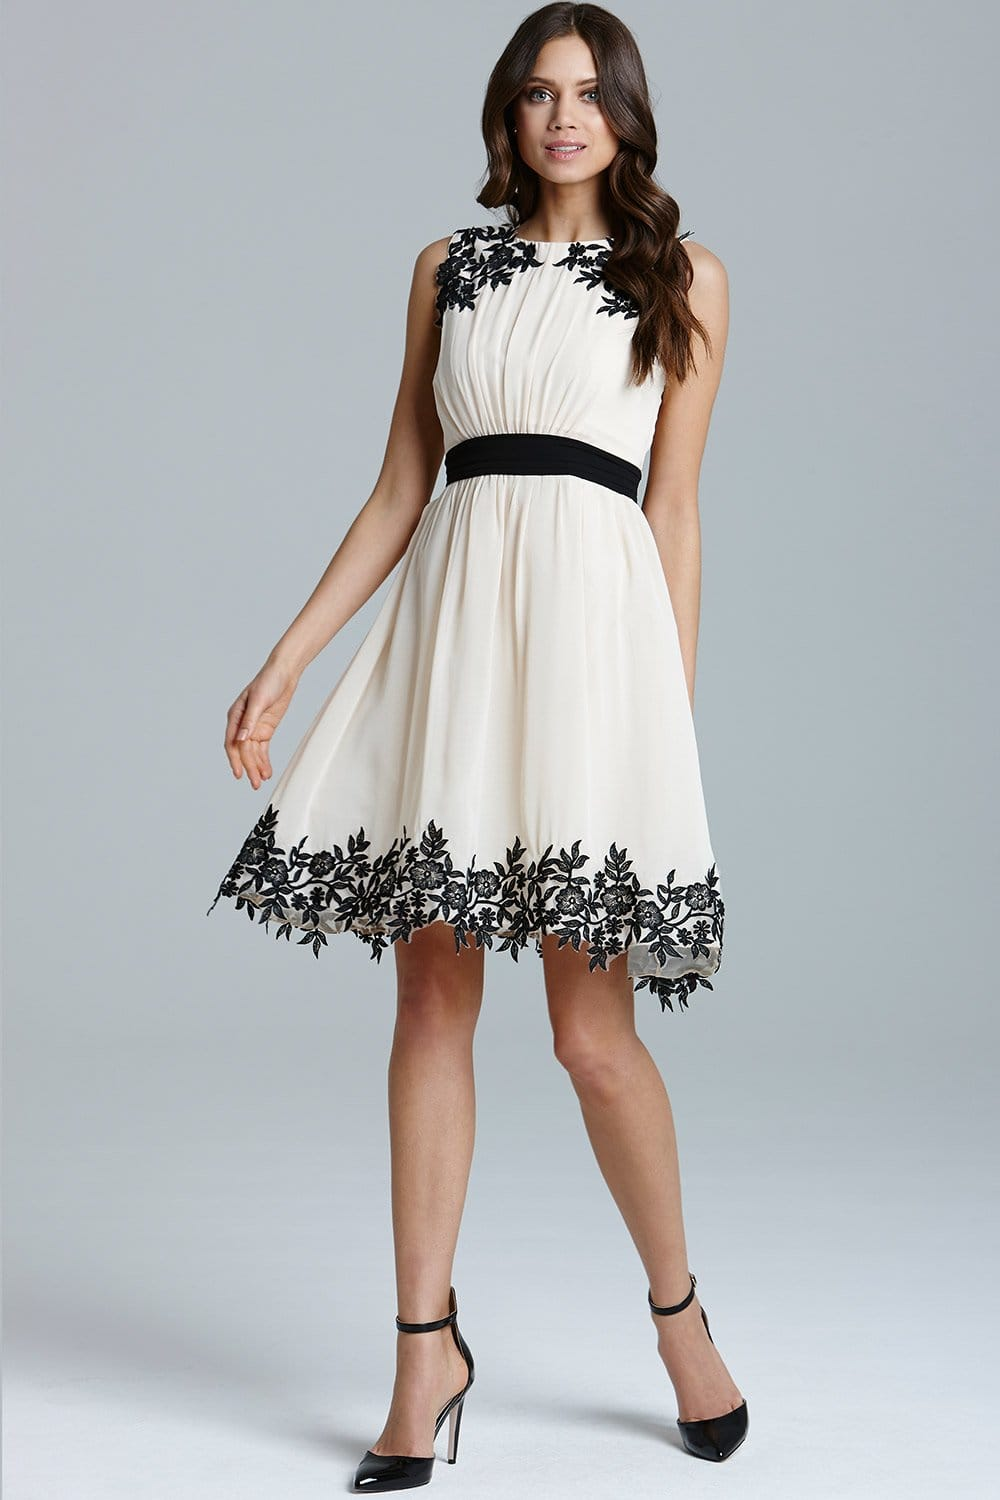 Cream Floral Applique Chiffon Prom Dress - from Little